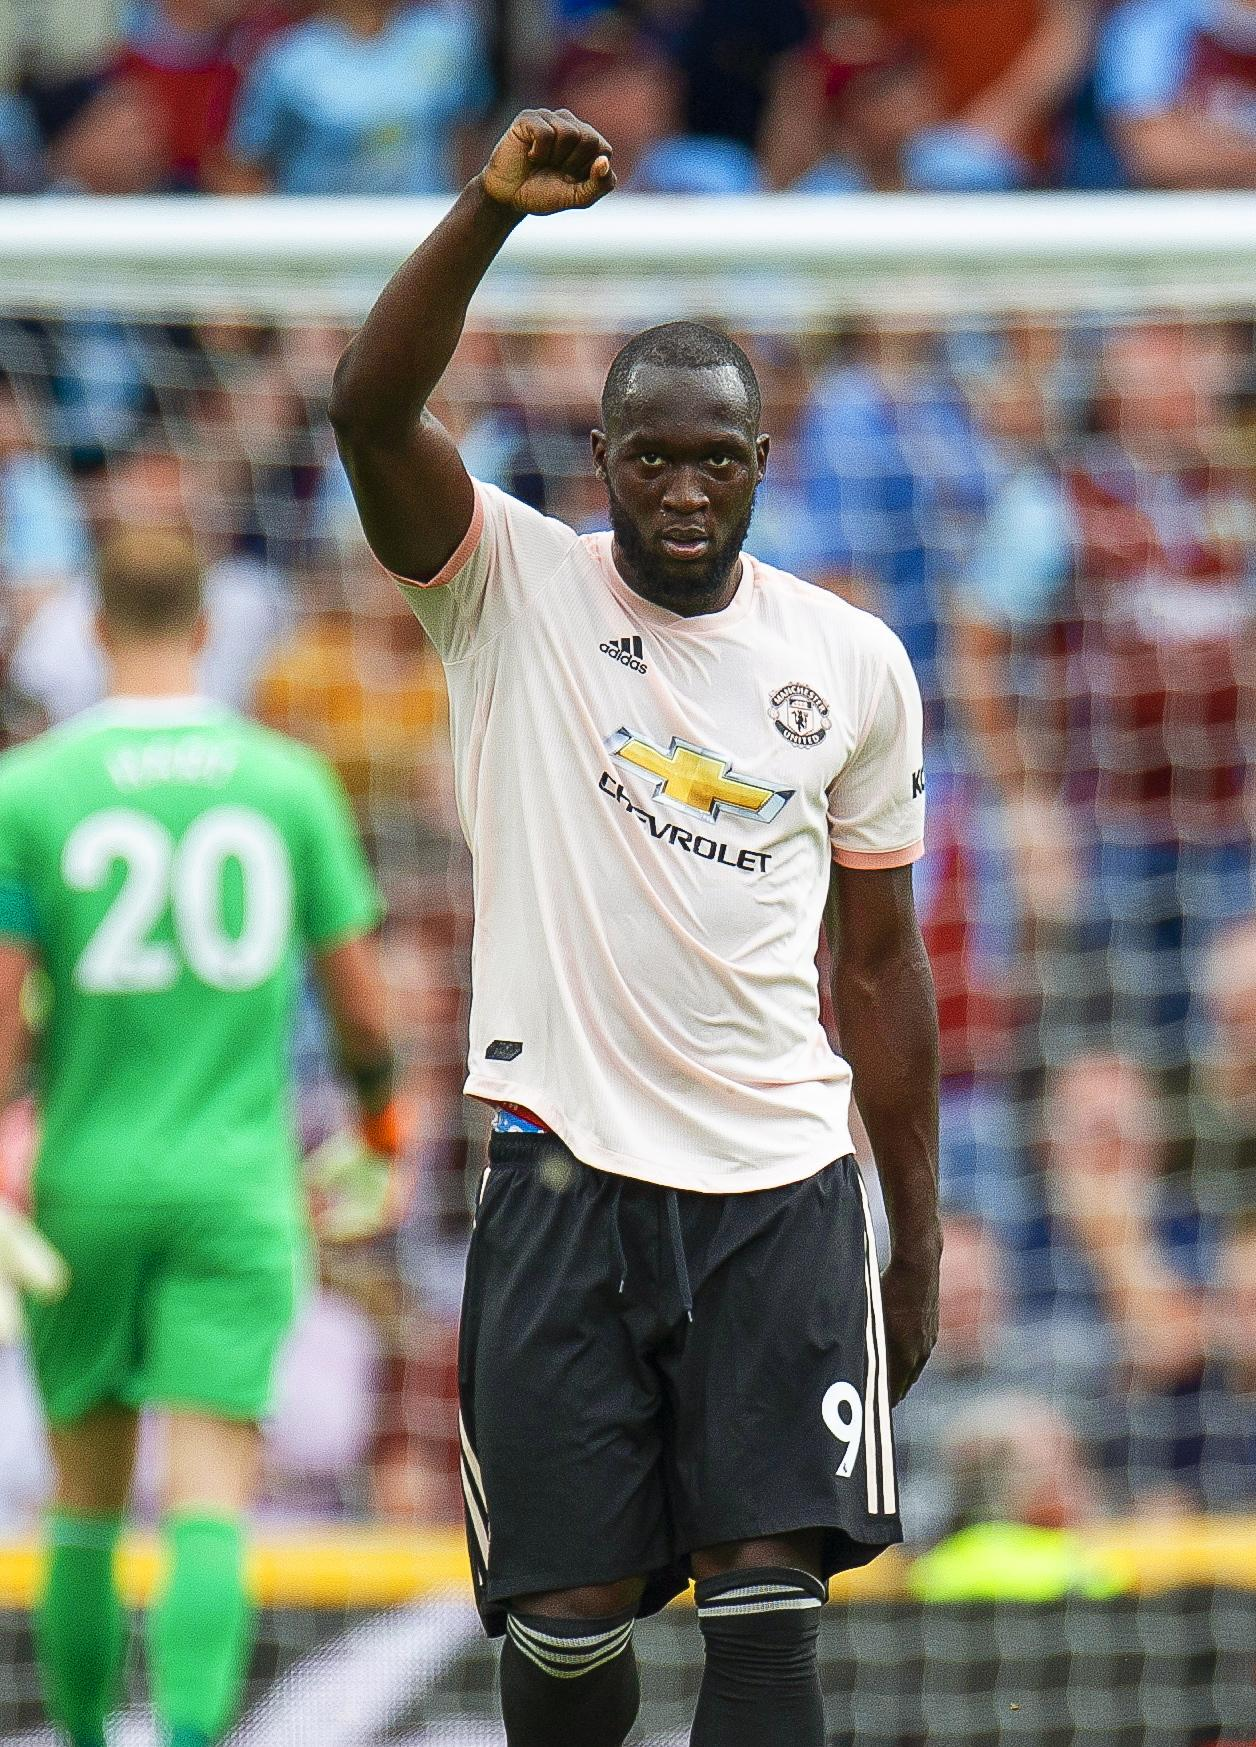 Romelu Lukaku fired Manchester United to a much-needed win at Burnley